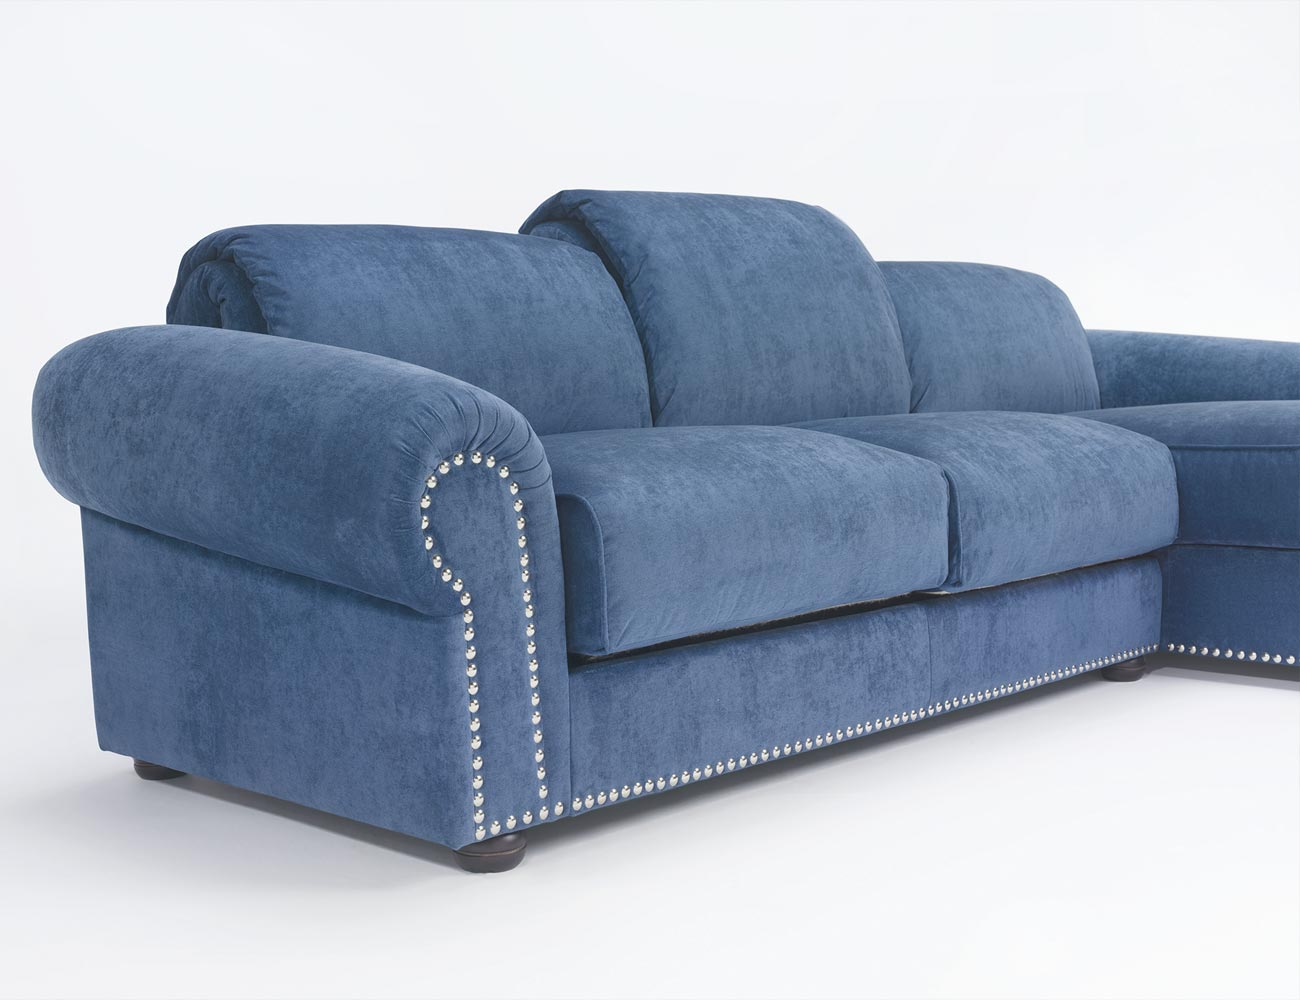 Sofa chaiselongue gran lujo decorativo azul 15